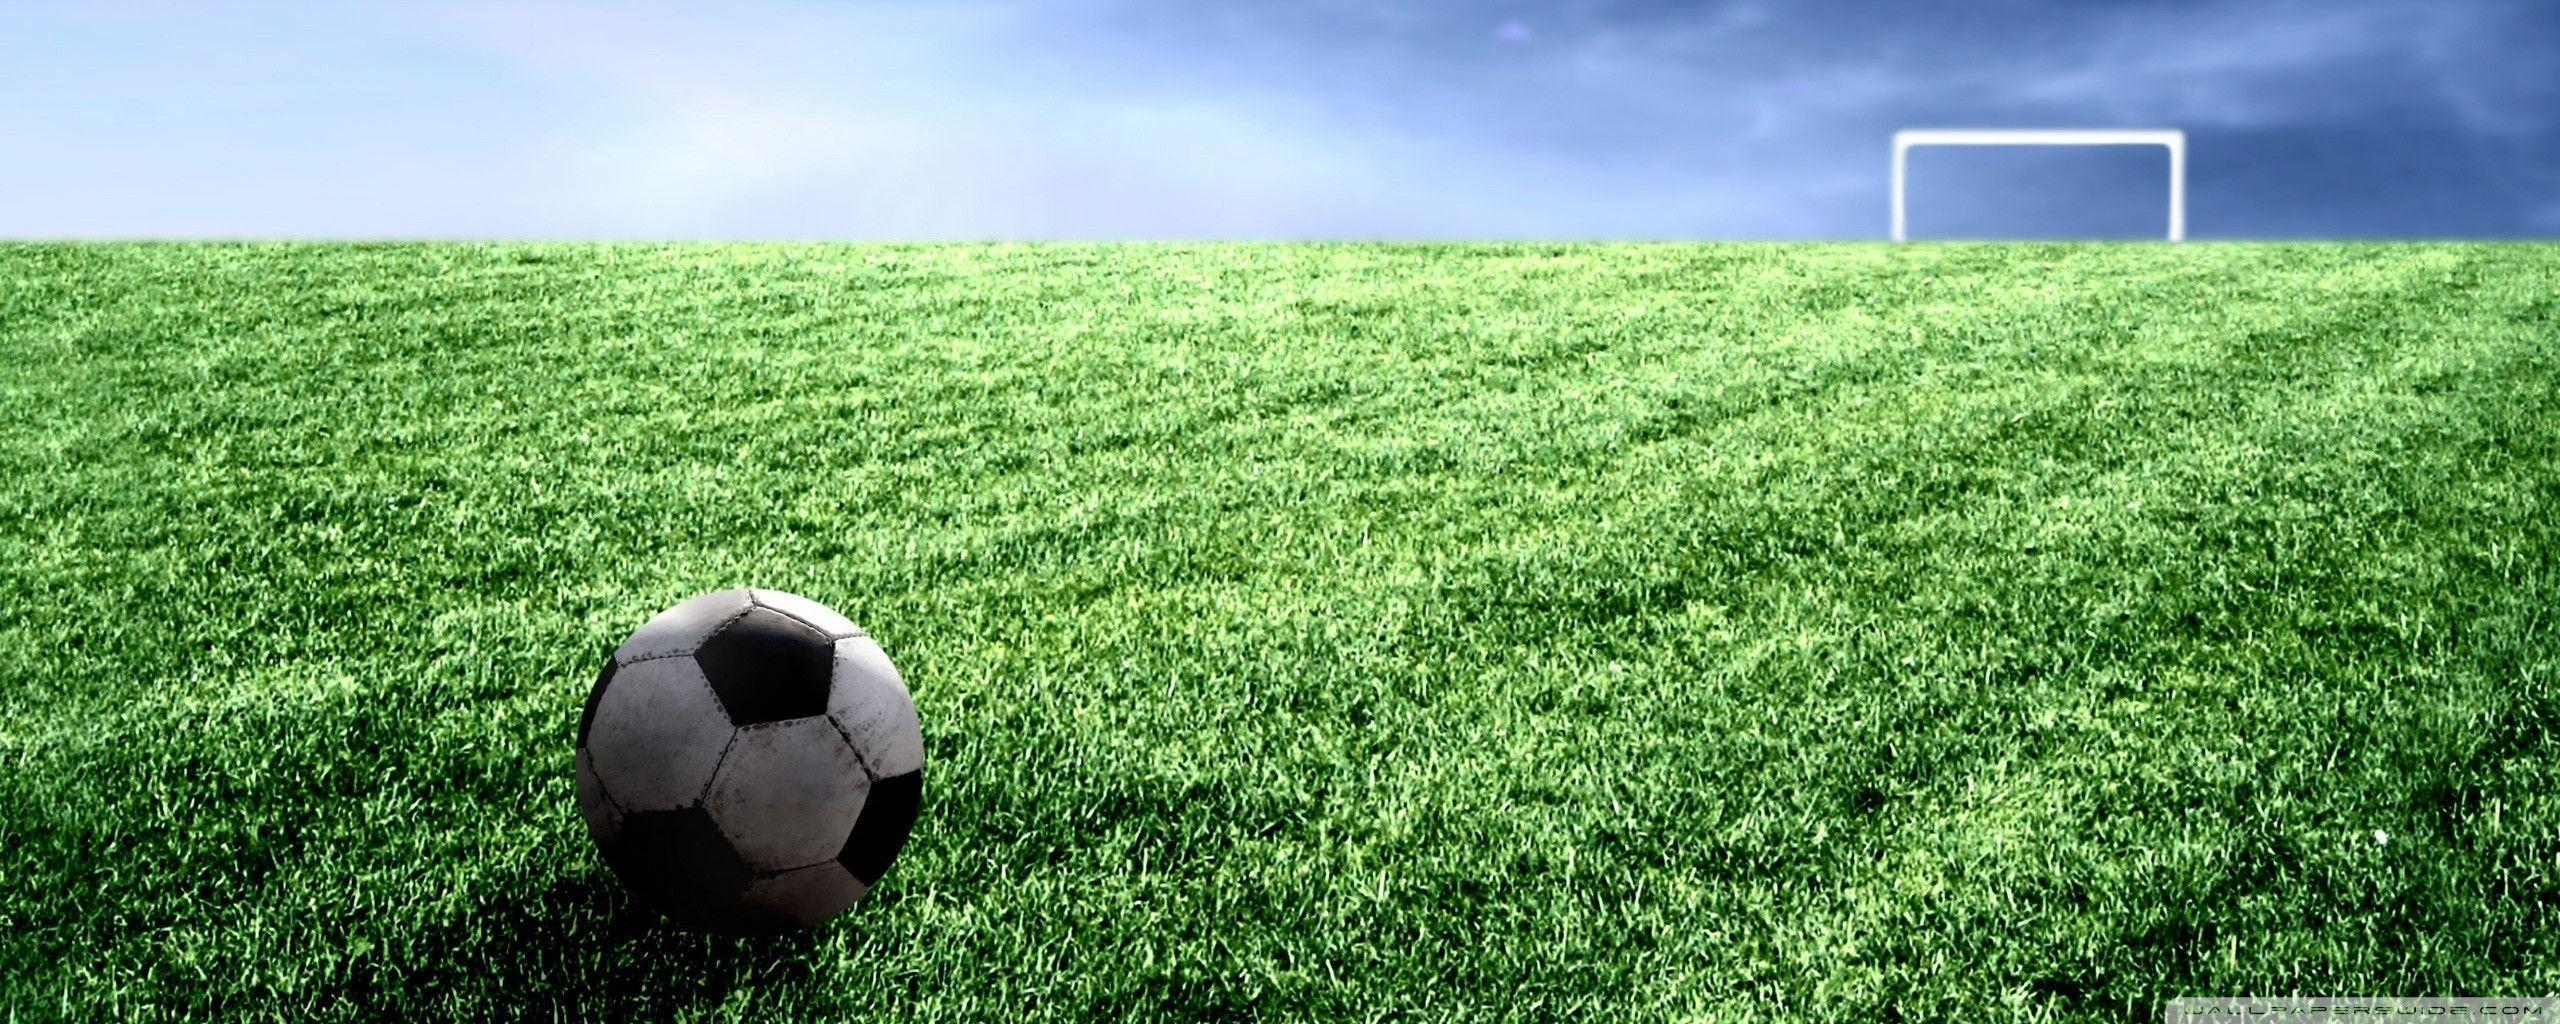 Wallpapers Hd Soccer Backgrounds 1 HD Wallpapers